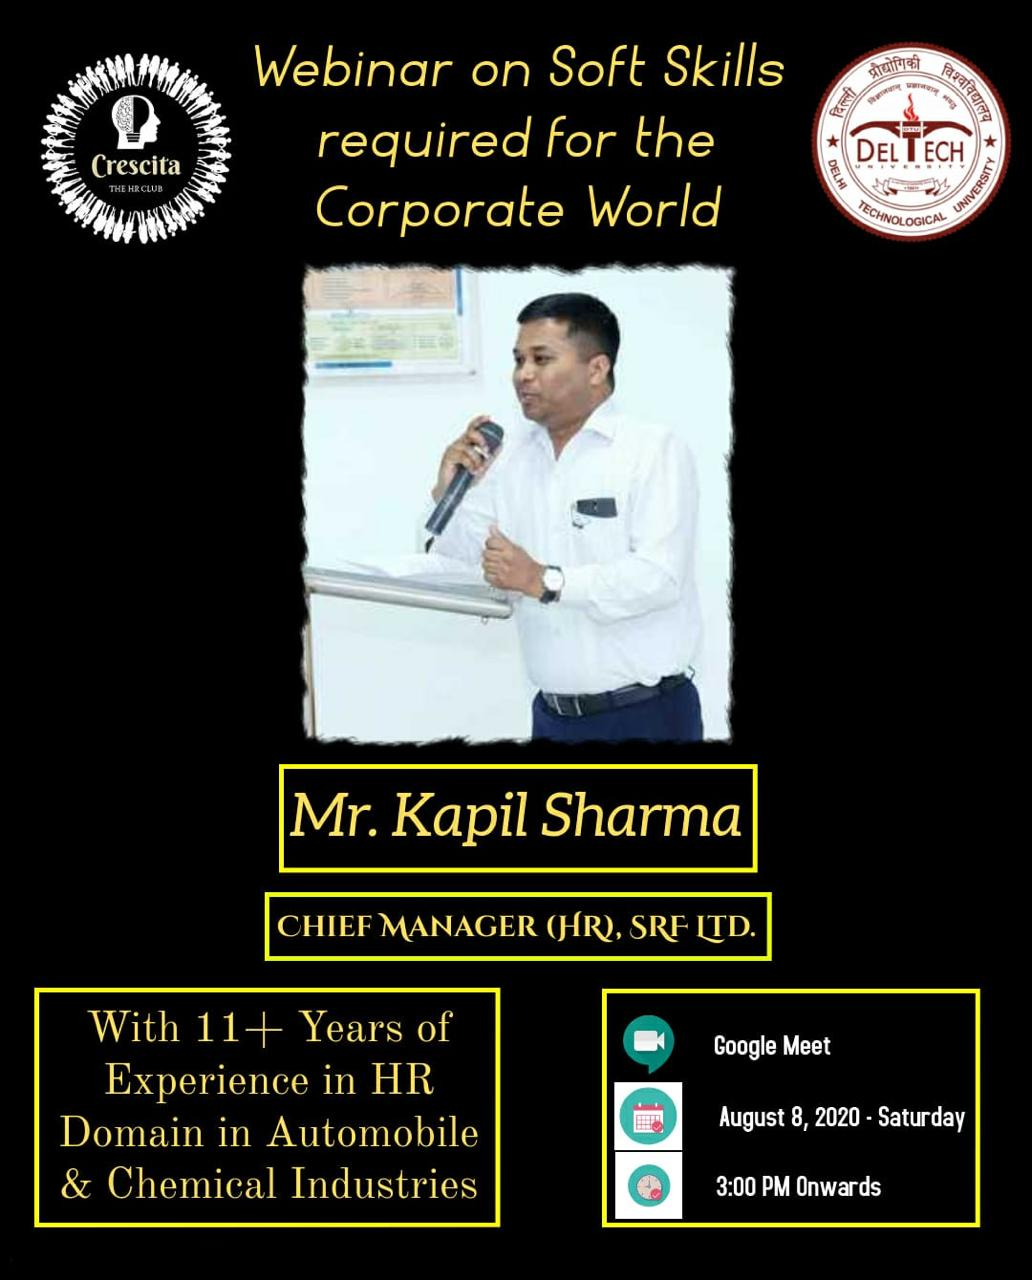 Soft Skills required for corporate world 2020